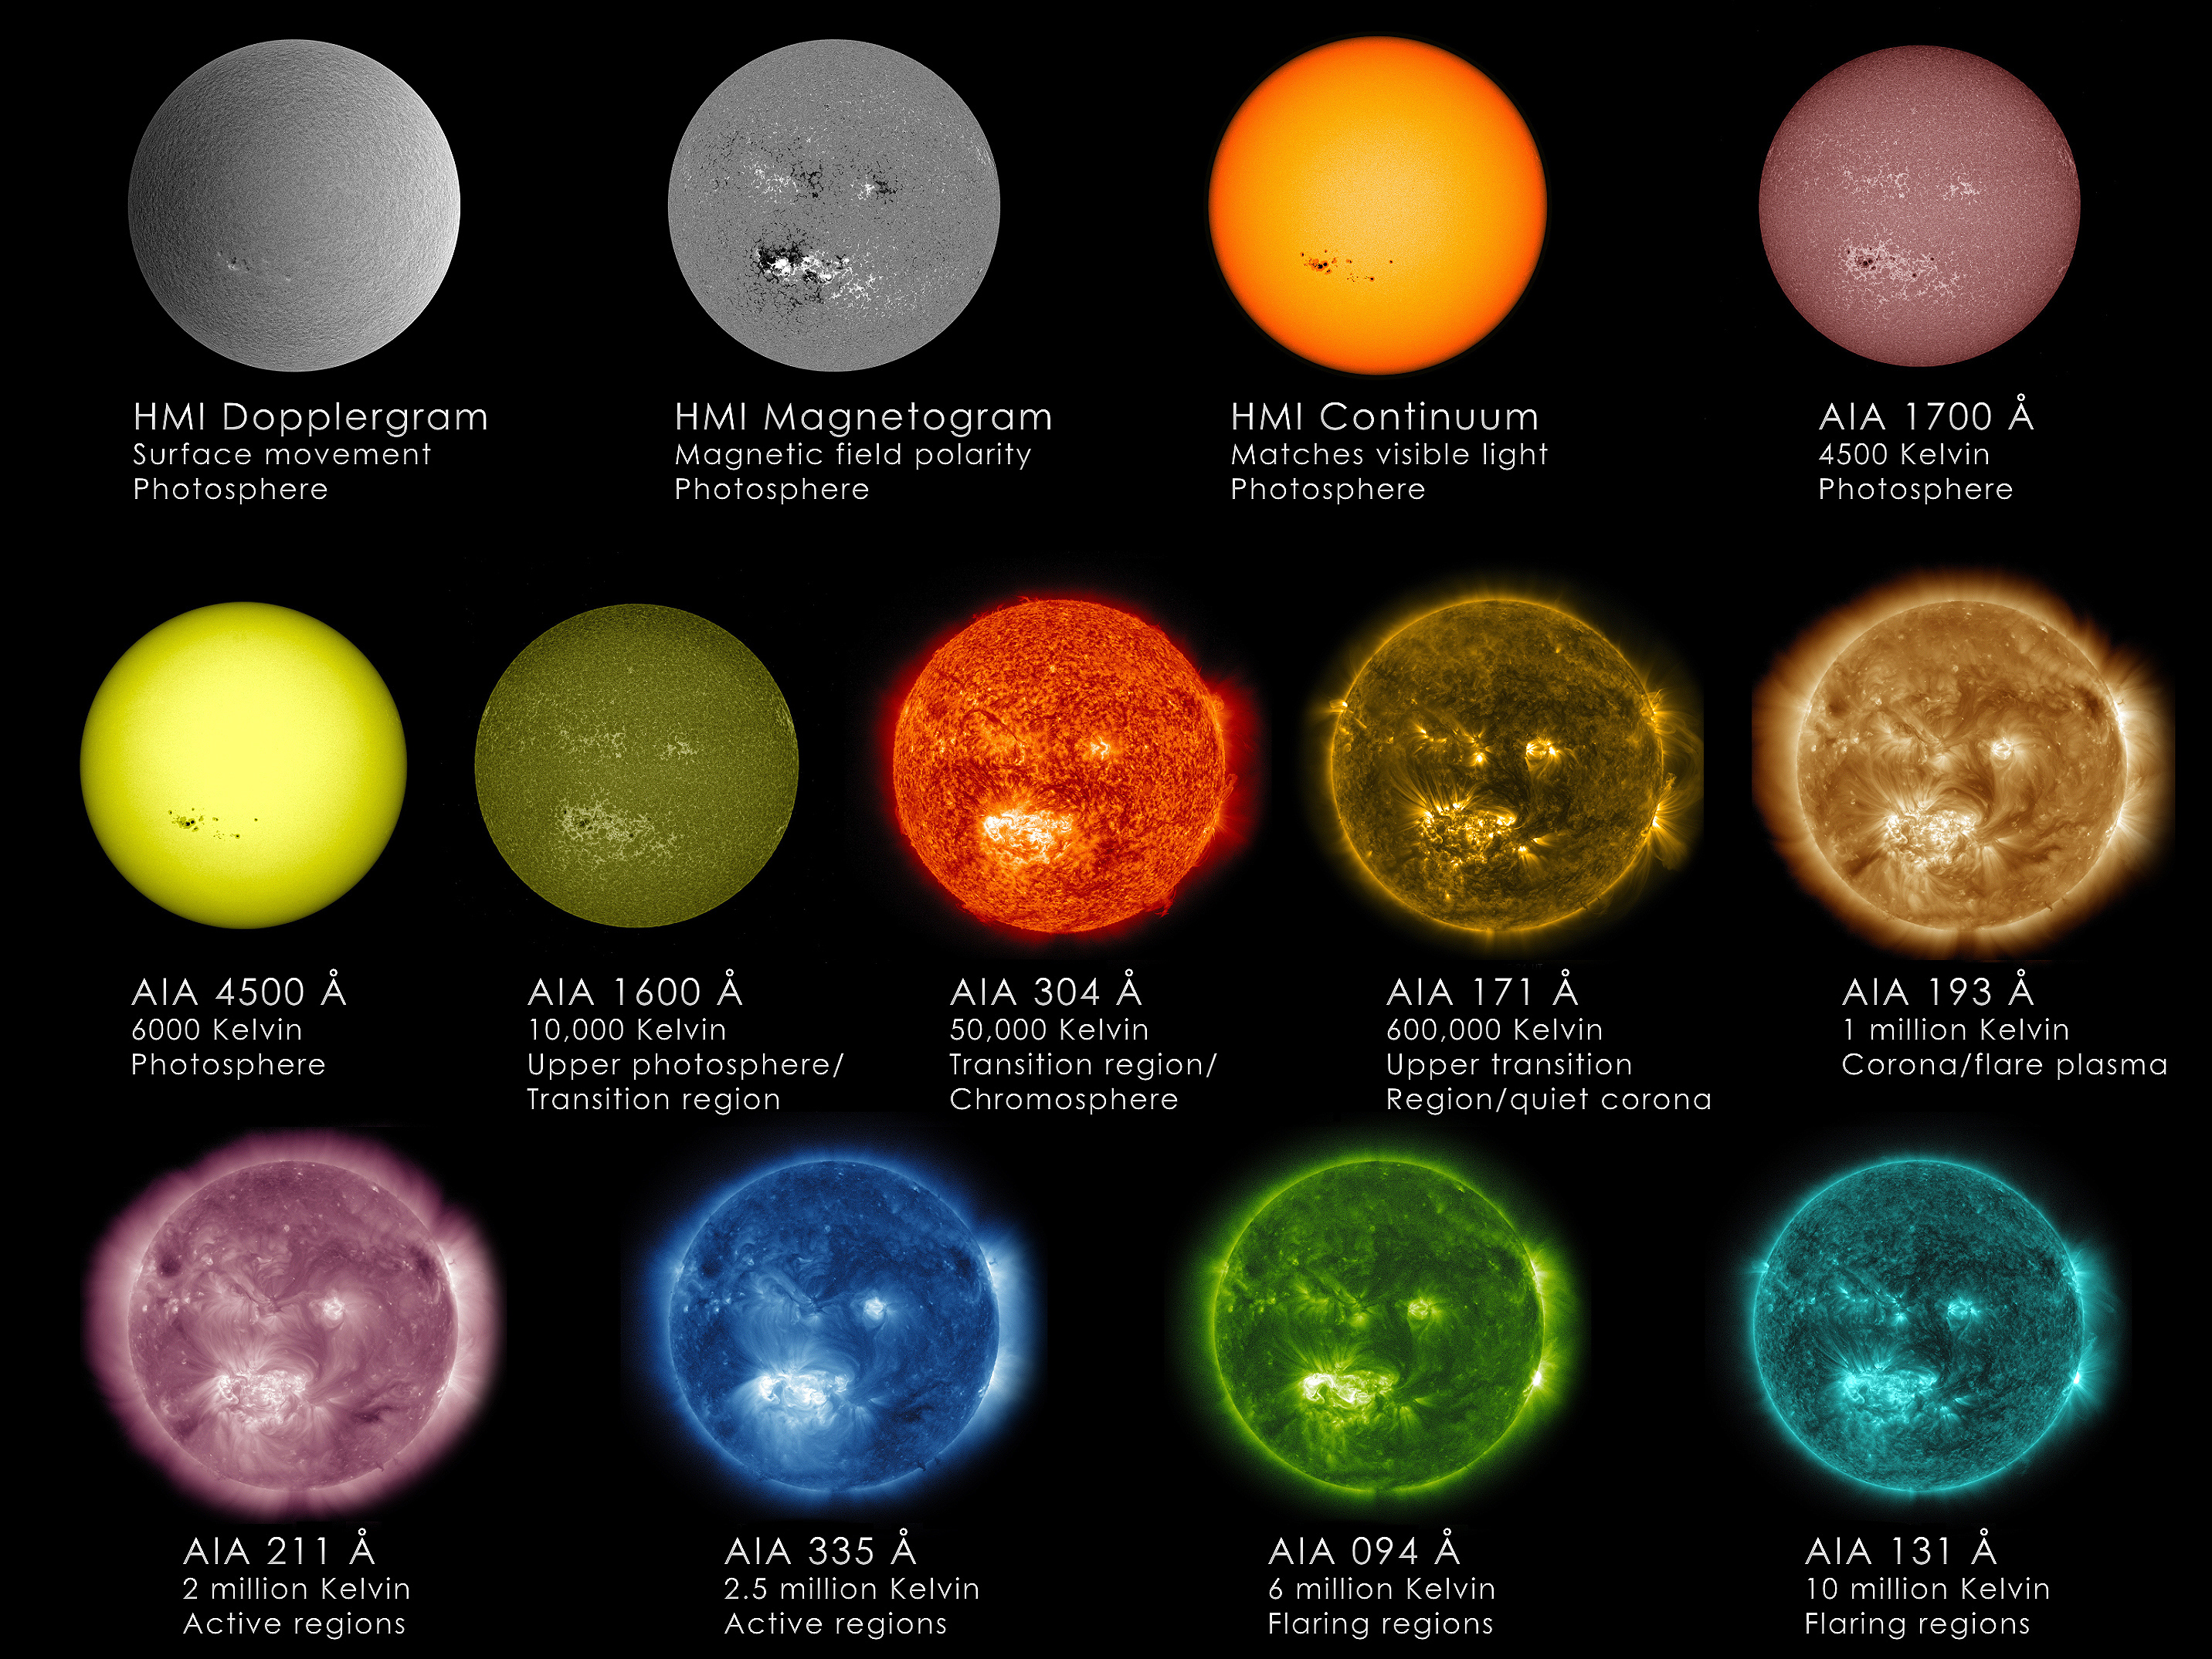 Each of the wavelengths observed by NASA's Solar Dynamics Observatory (SDO) was chosen to emphasize a specific aspect of the sun's surface or atmosphere. This image shows imagery both from the Advanced Imaging Assembly (AIA), which helps scientists observe how solar material moves around the sun's atmosphere, and the Helioseismic and Magnetic Imager (HMI), which focuses on the movement and magnetic properties of the sun's surface. Credit: NASA/SDO/GSFC